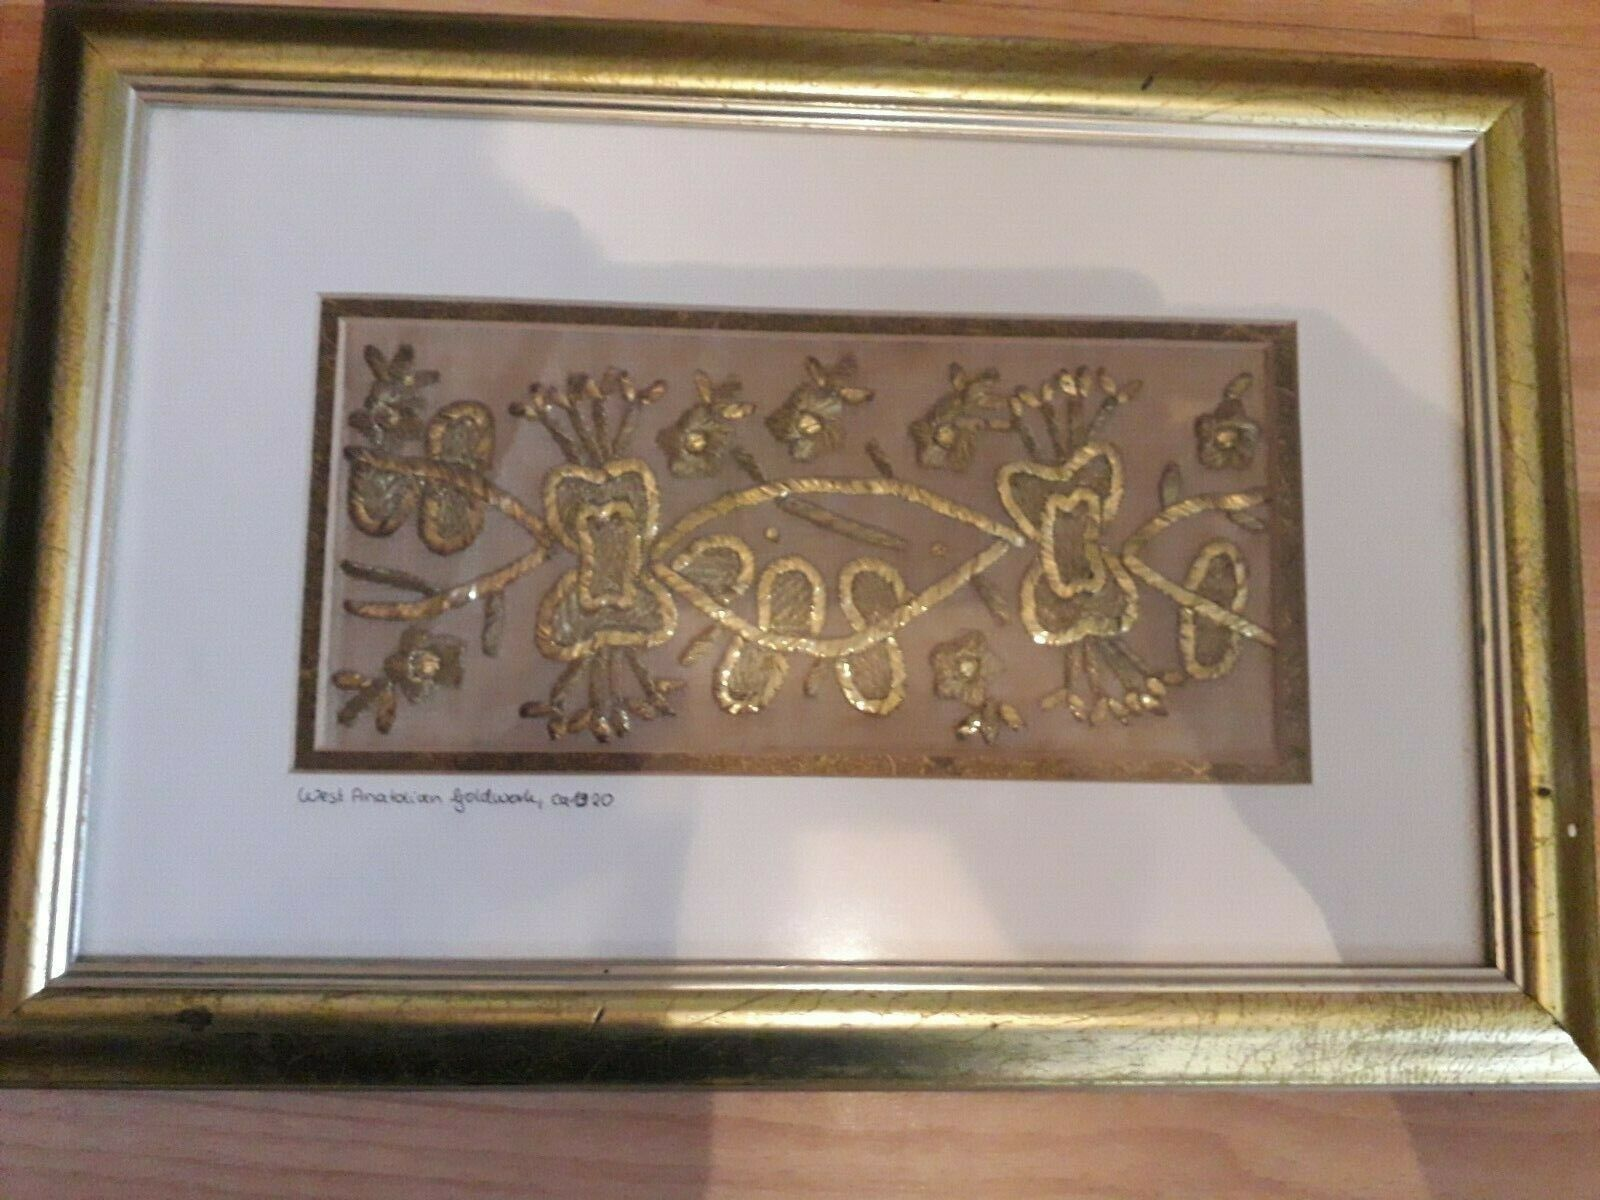 goldwork west Anatolian circa 1920 framed 15 by 10 inches